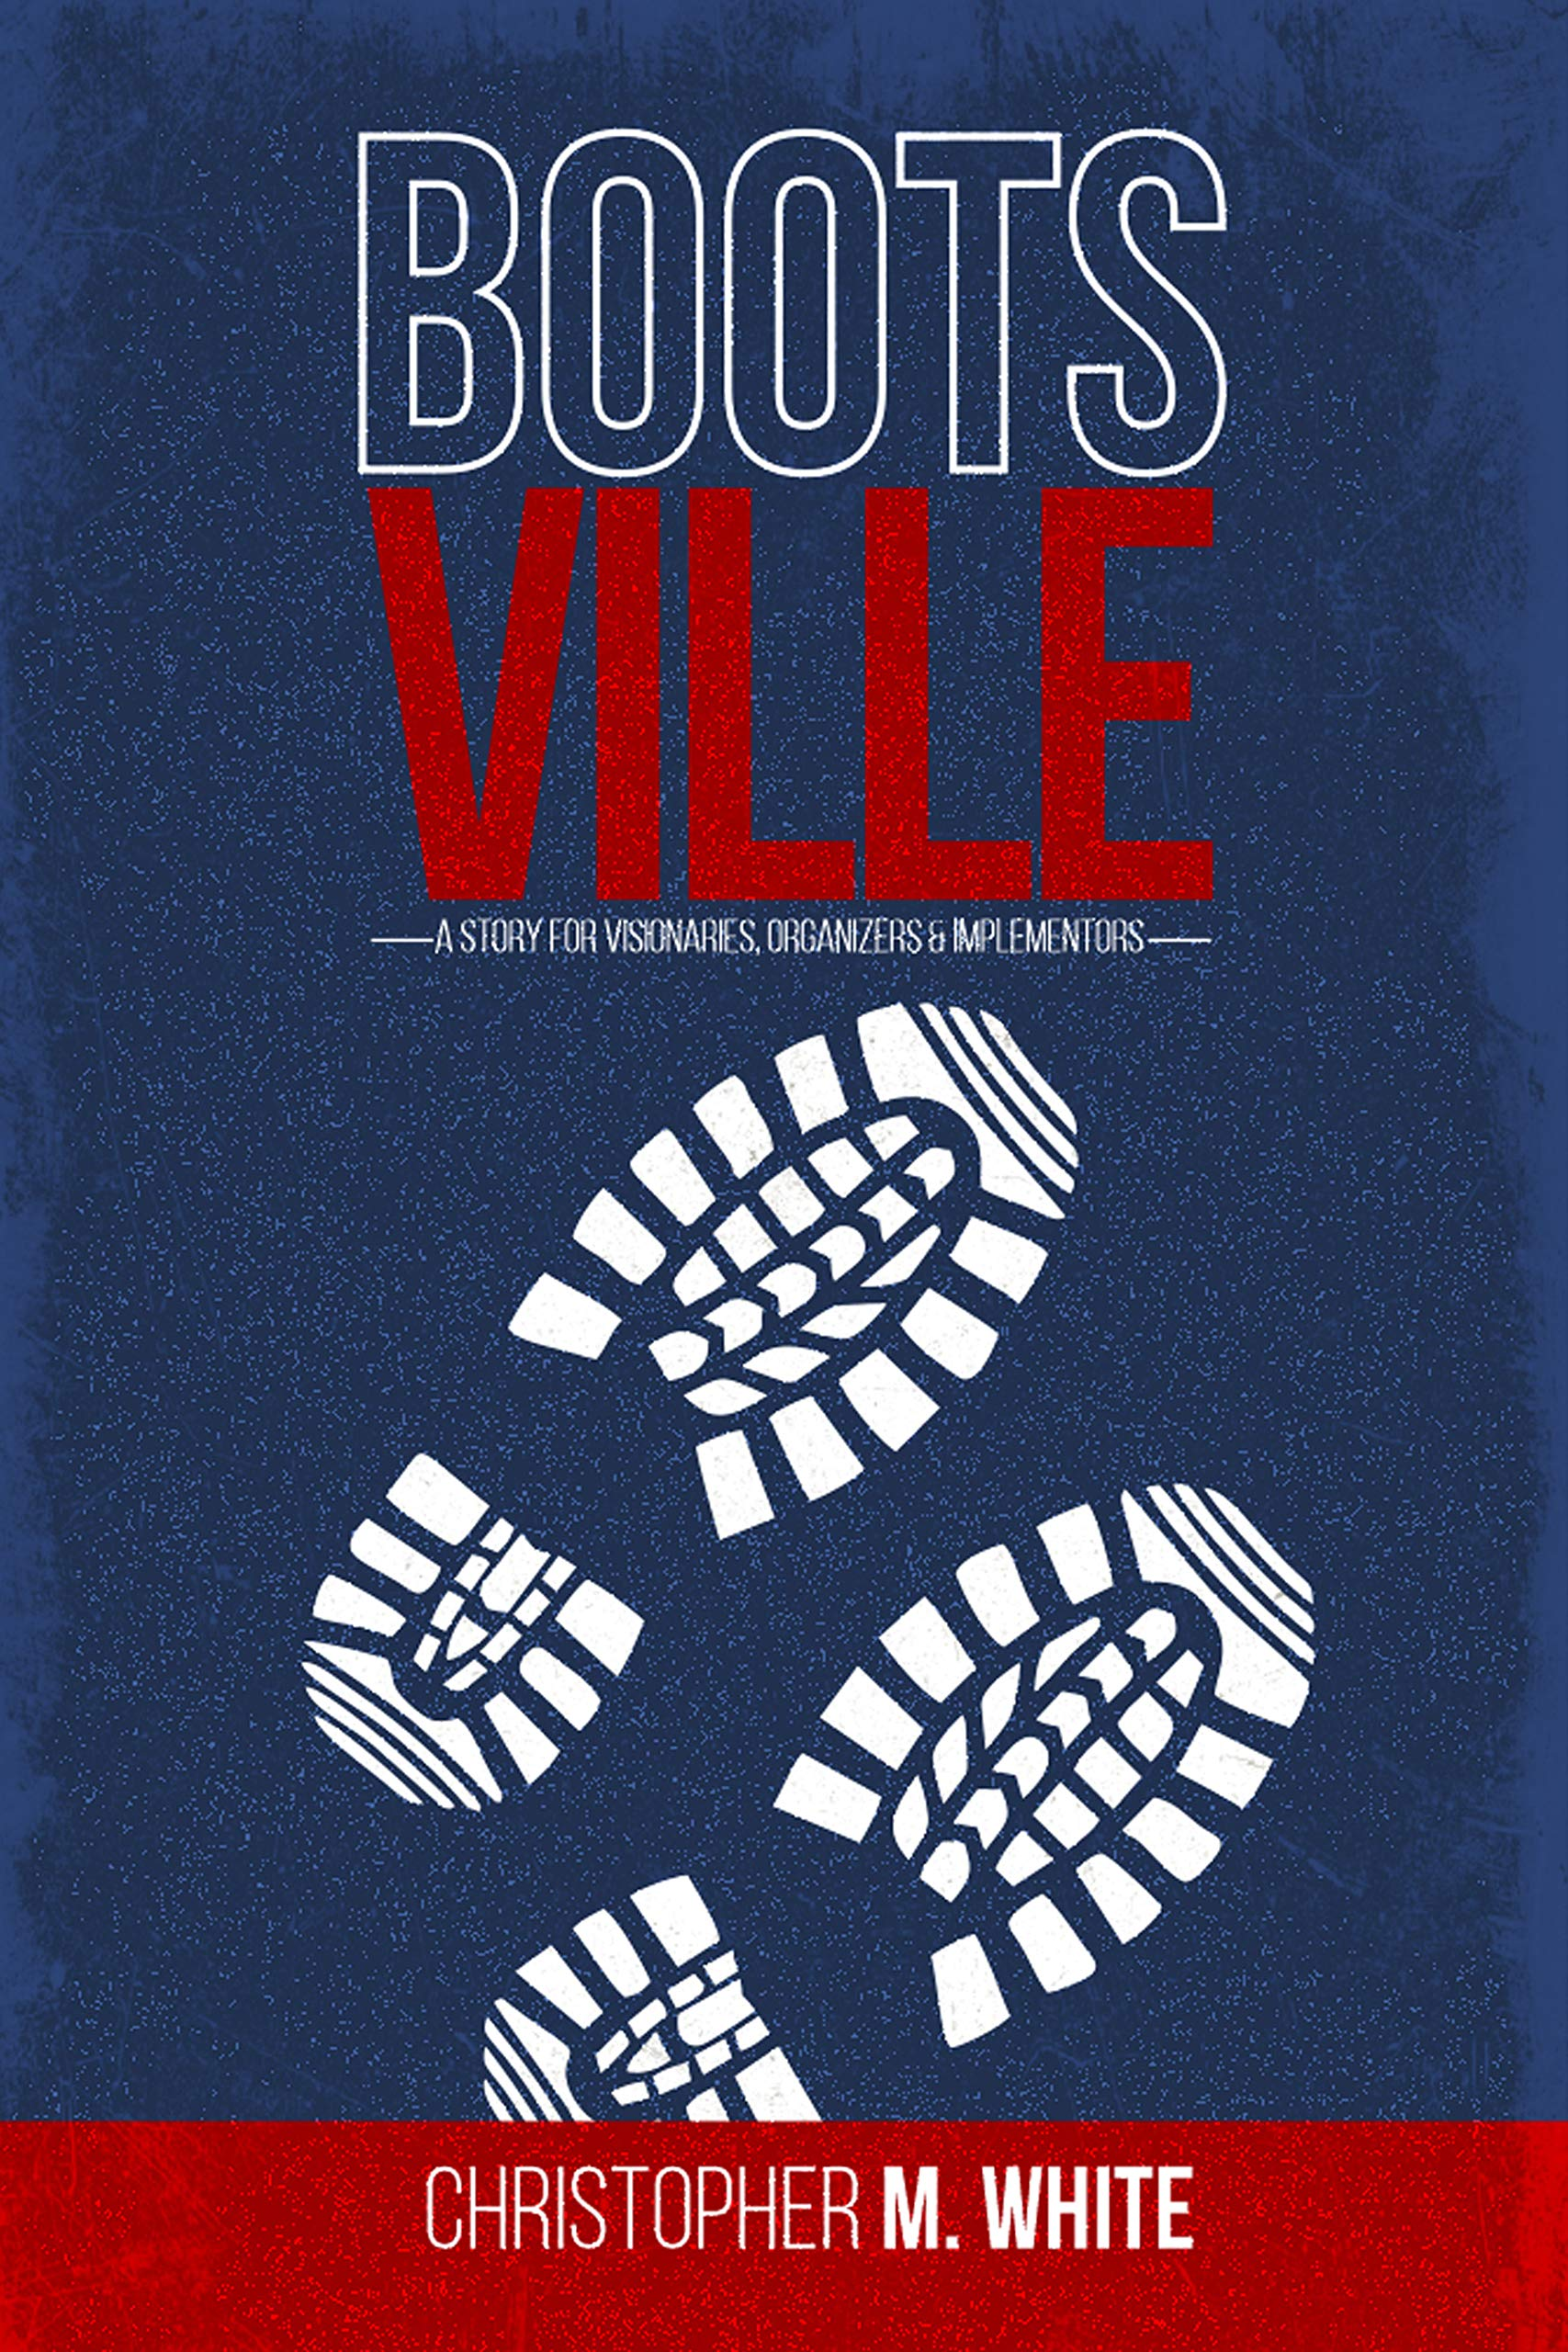 Bootsville: A Story for Visionaries, Organizers, & Implementors